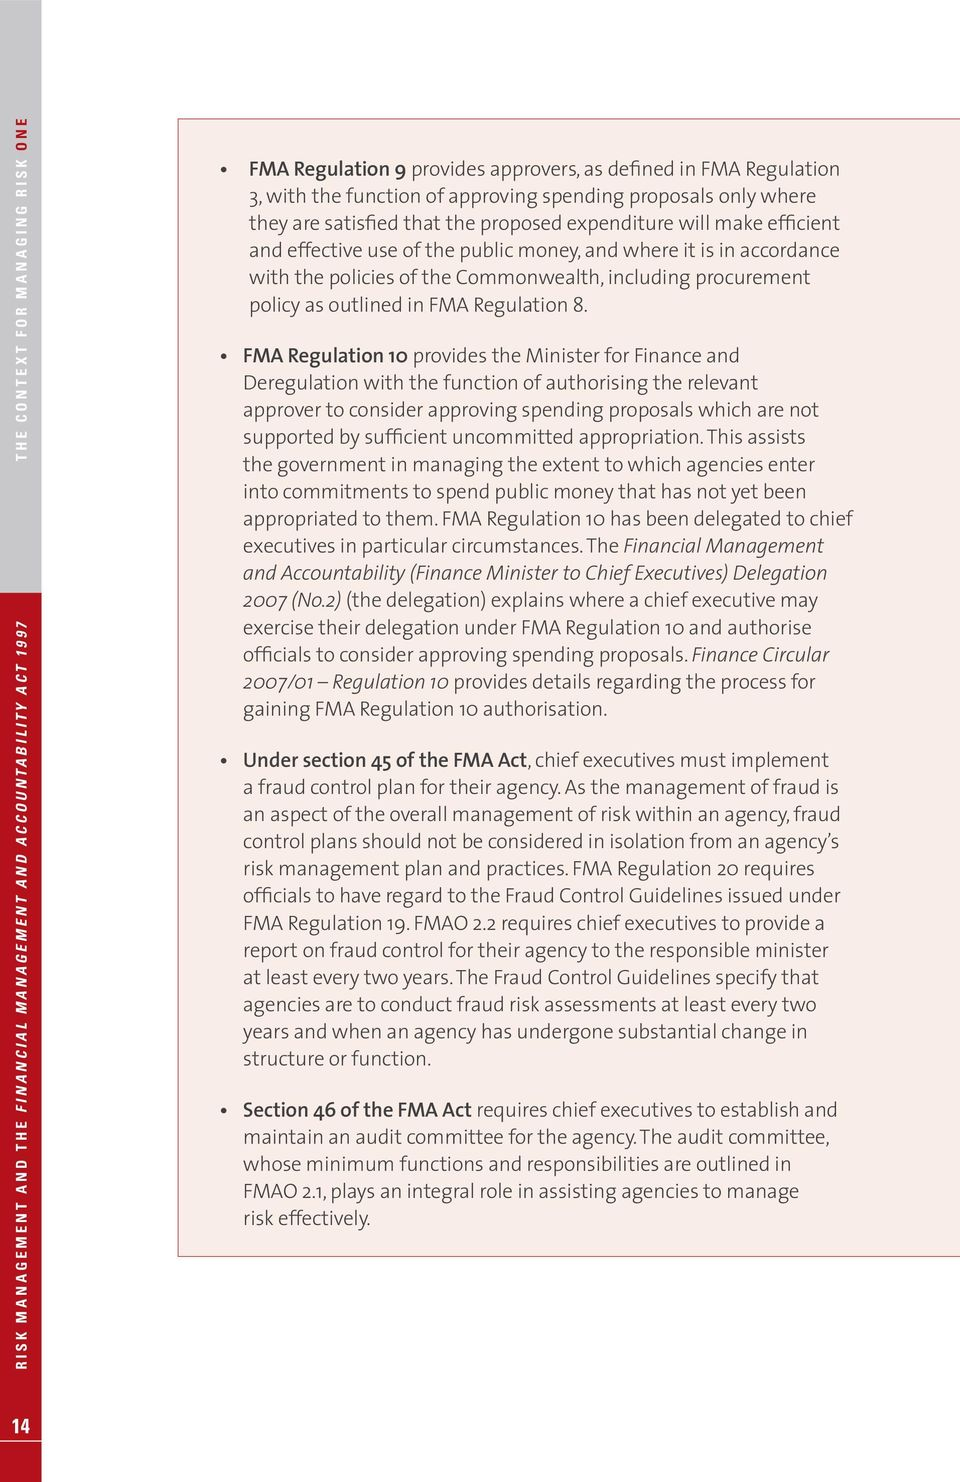 the Commonwealth, including procurement policy as outlined in FMA Regulation 8.